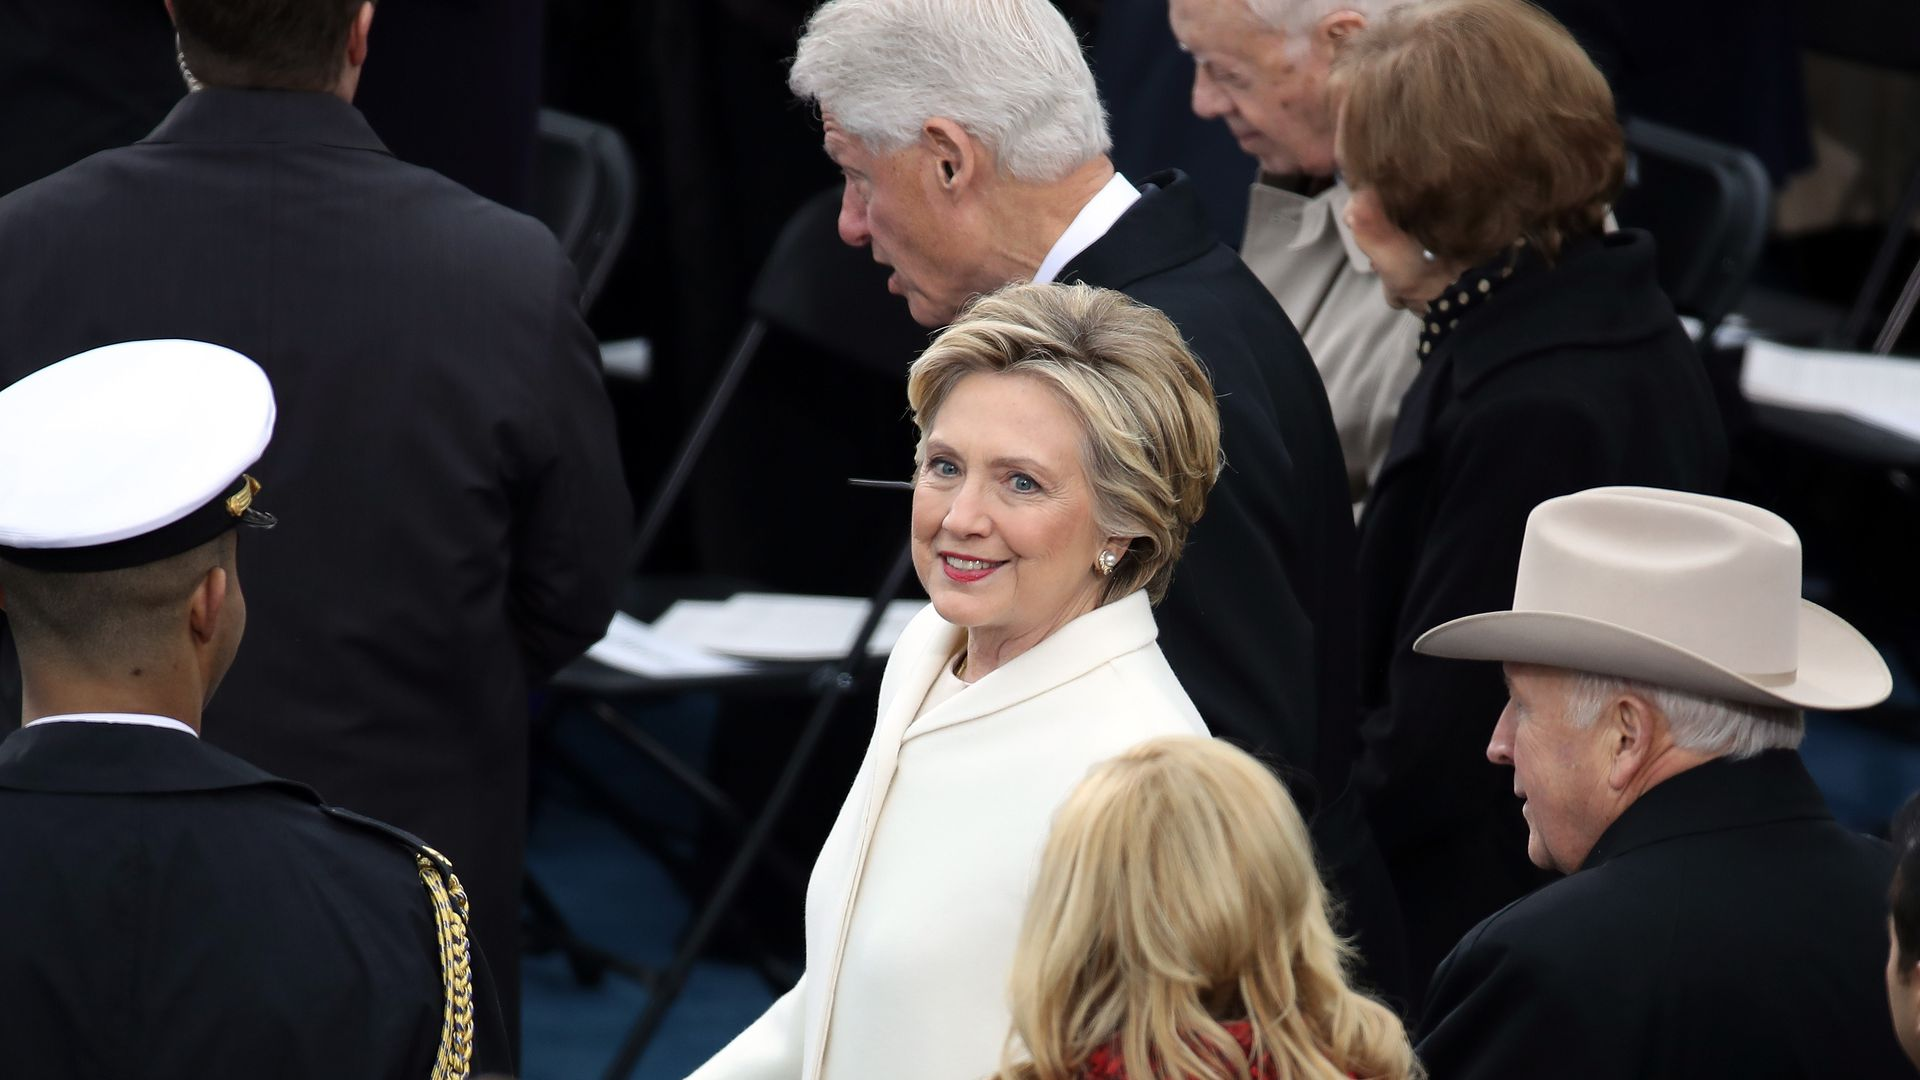 Hillary Clinton at Donald Trump's inauguration.